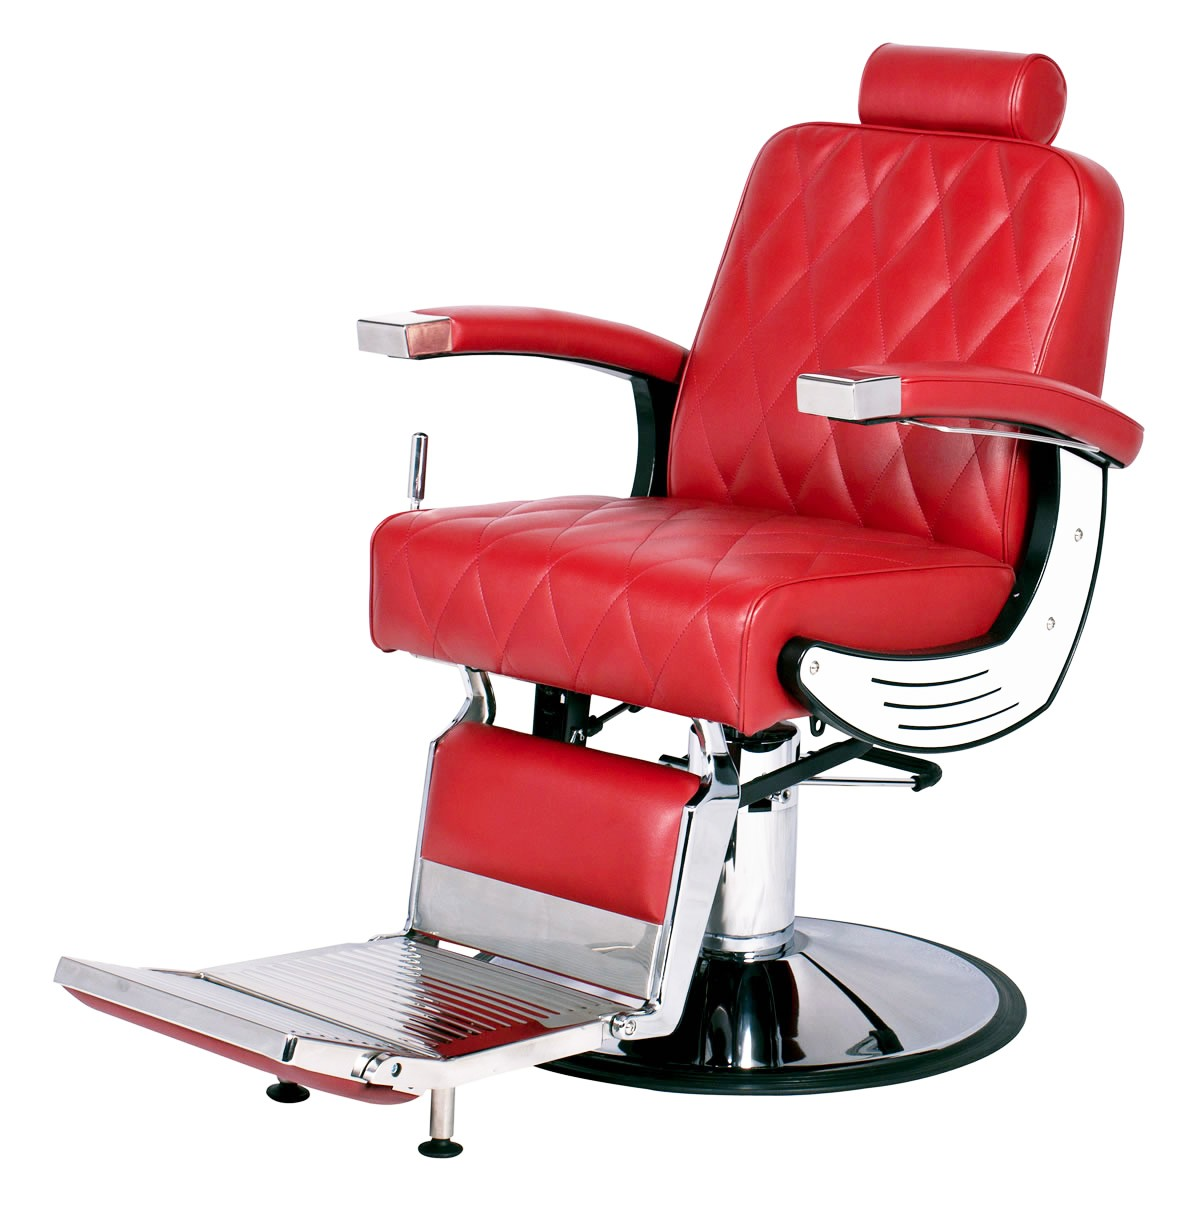 Shop Chairs Quotbaron Quot Heavy Duty Barber Chair Barber Shop Chairs